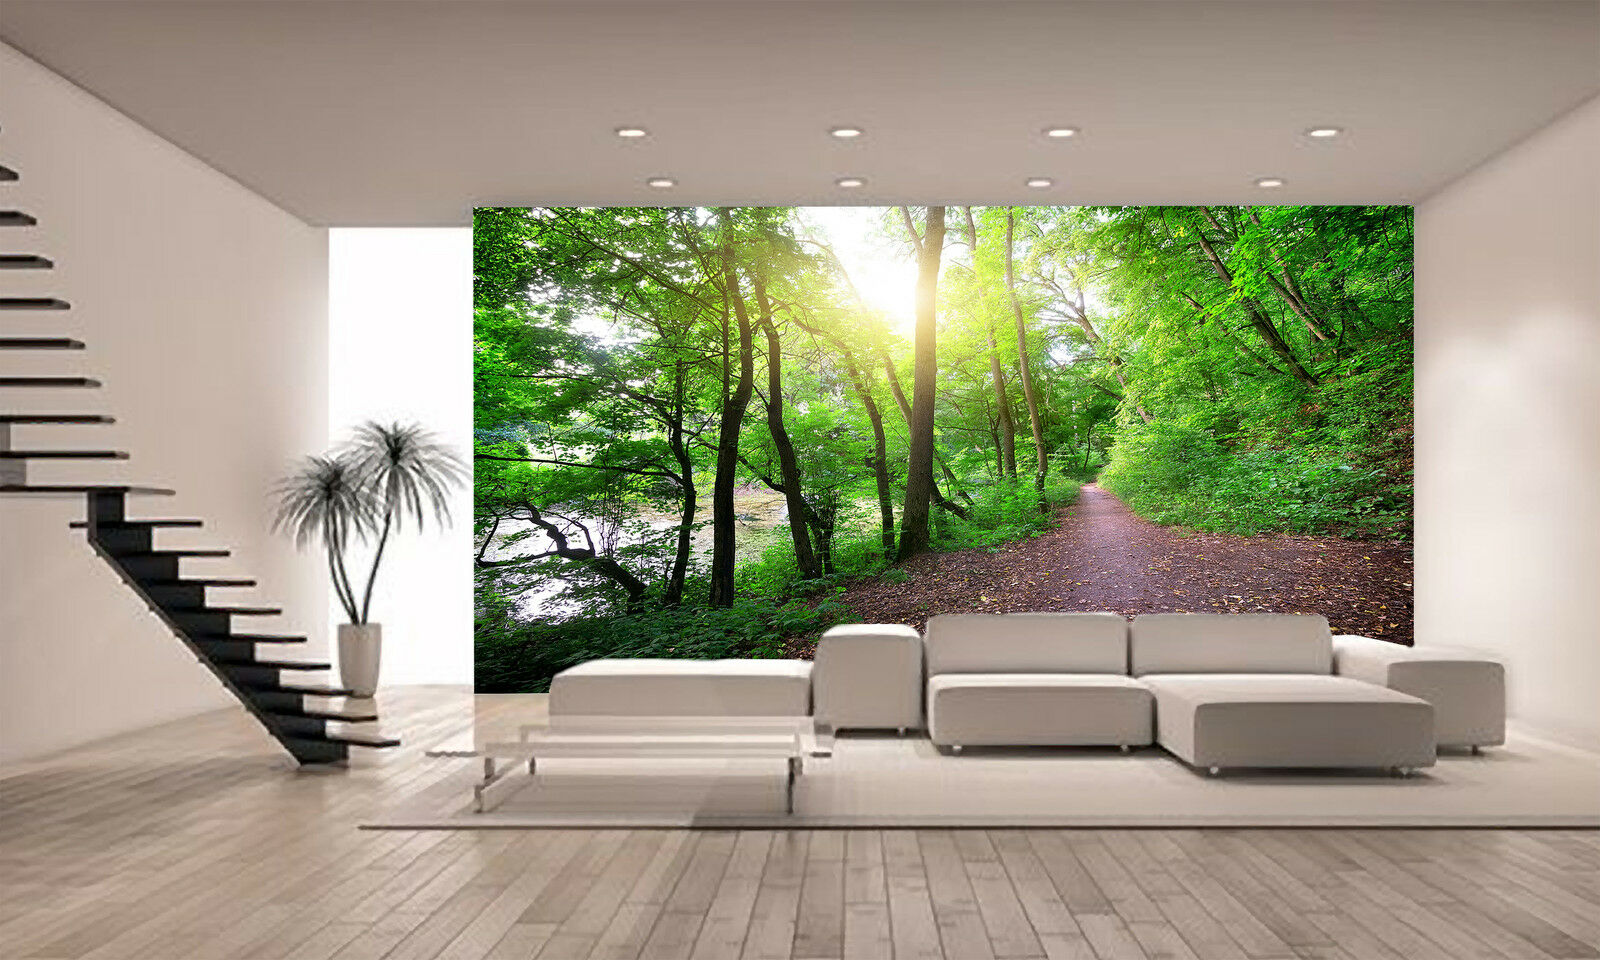 Path Near a Forest Lake Wall Mural Photo Wallpaper GIANT DECOR Paper Poster